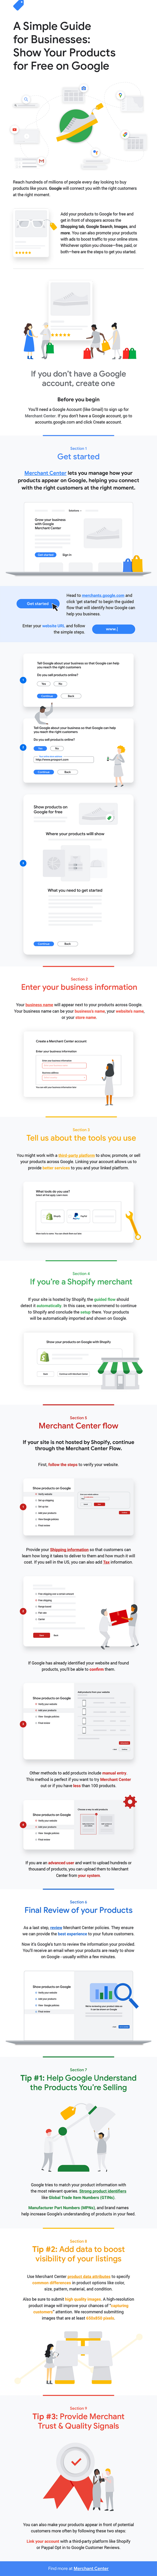 Google product listings infographic